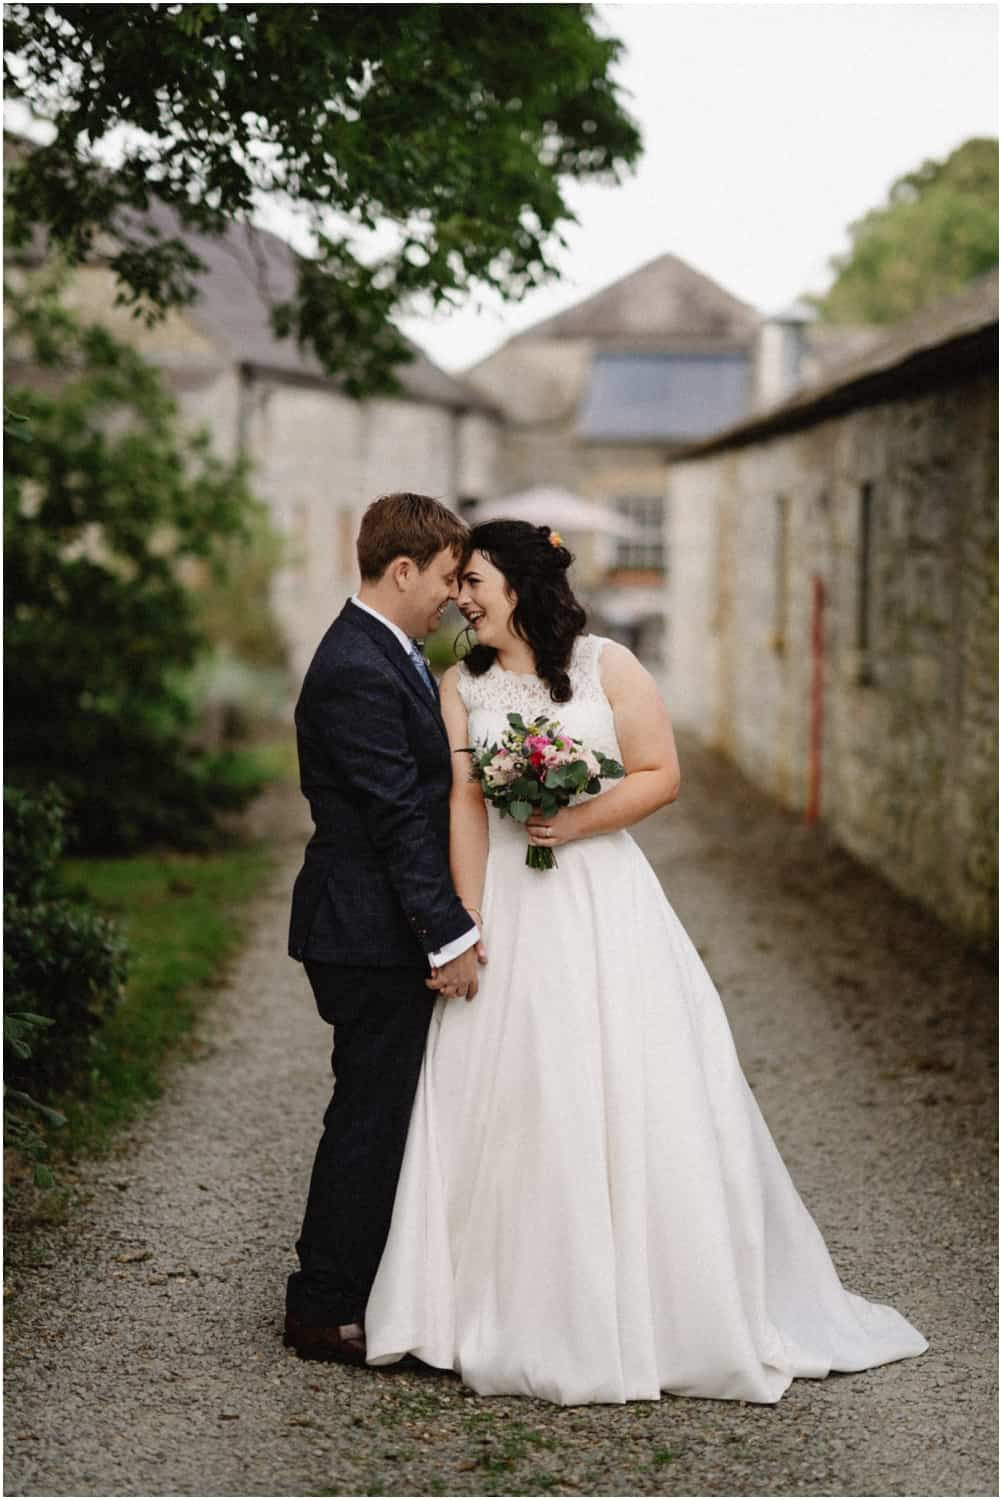 A bride and groom at their Durhamstown Castle wedding